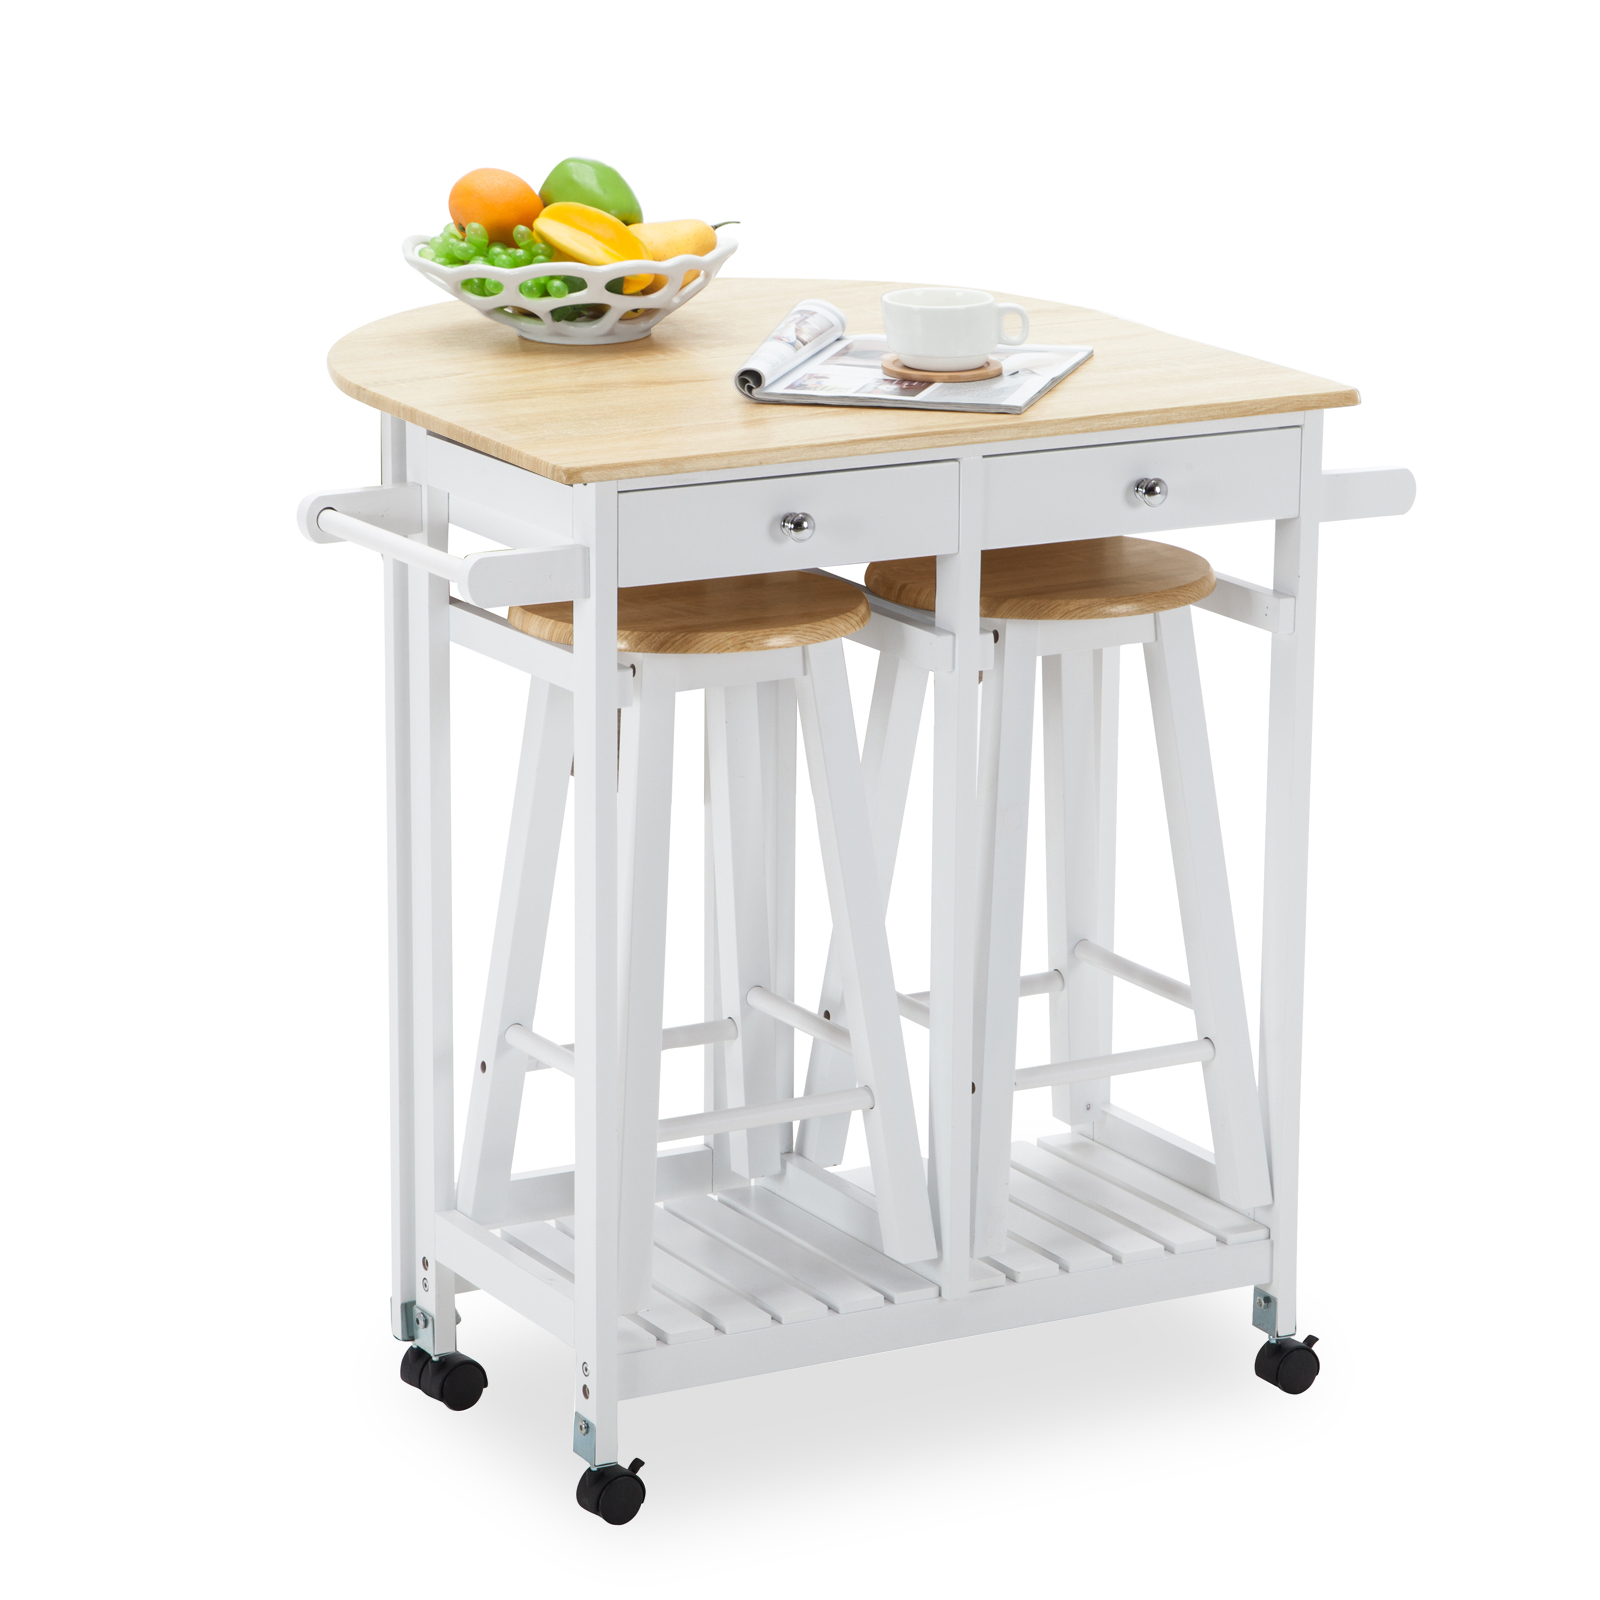 Kitchen Island Bench For Sale Ebay: Kitchen Island Rolling Trolley Cart Storage Dinning Table